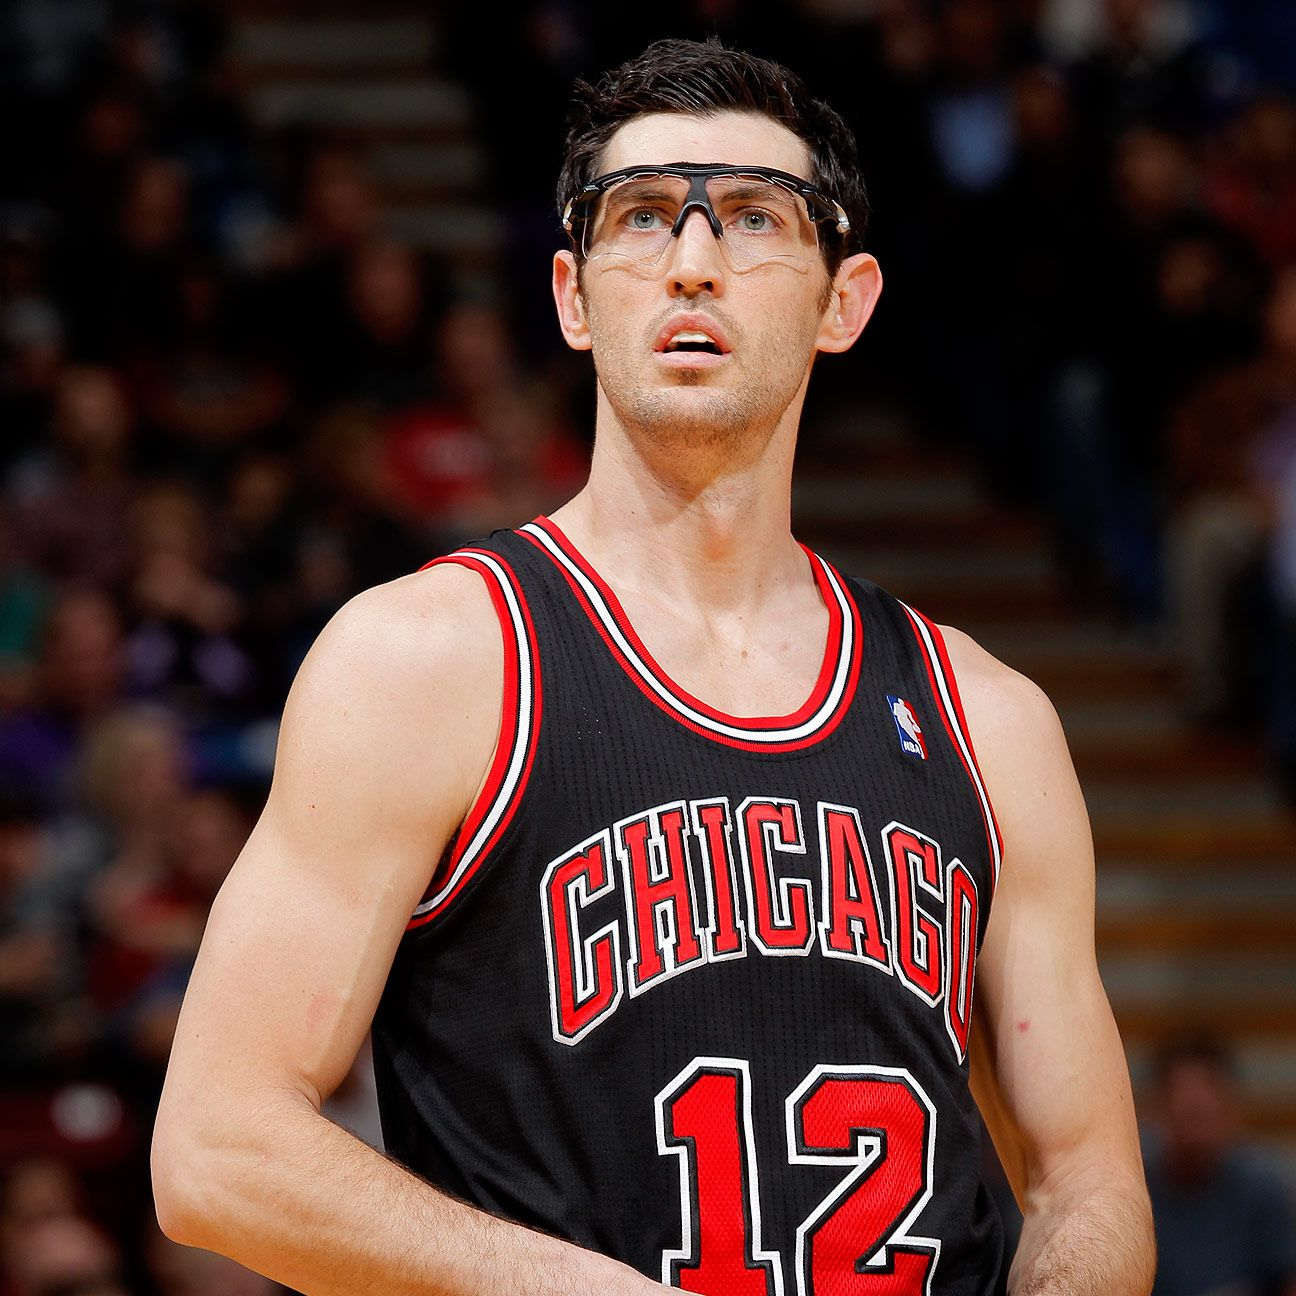 Veteran point guard Kirk Hinrich to return to Chicago Bulls